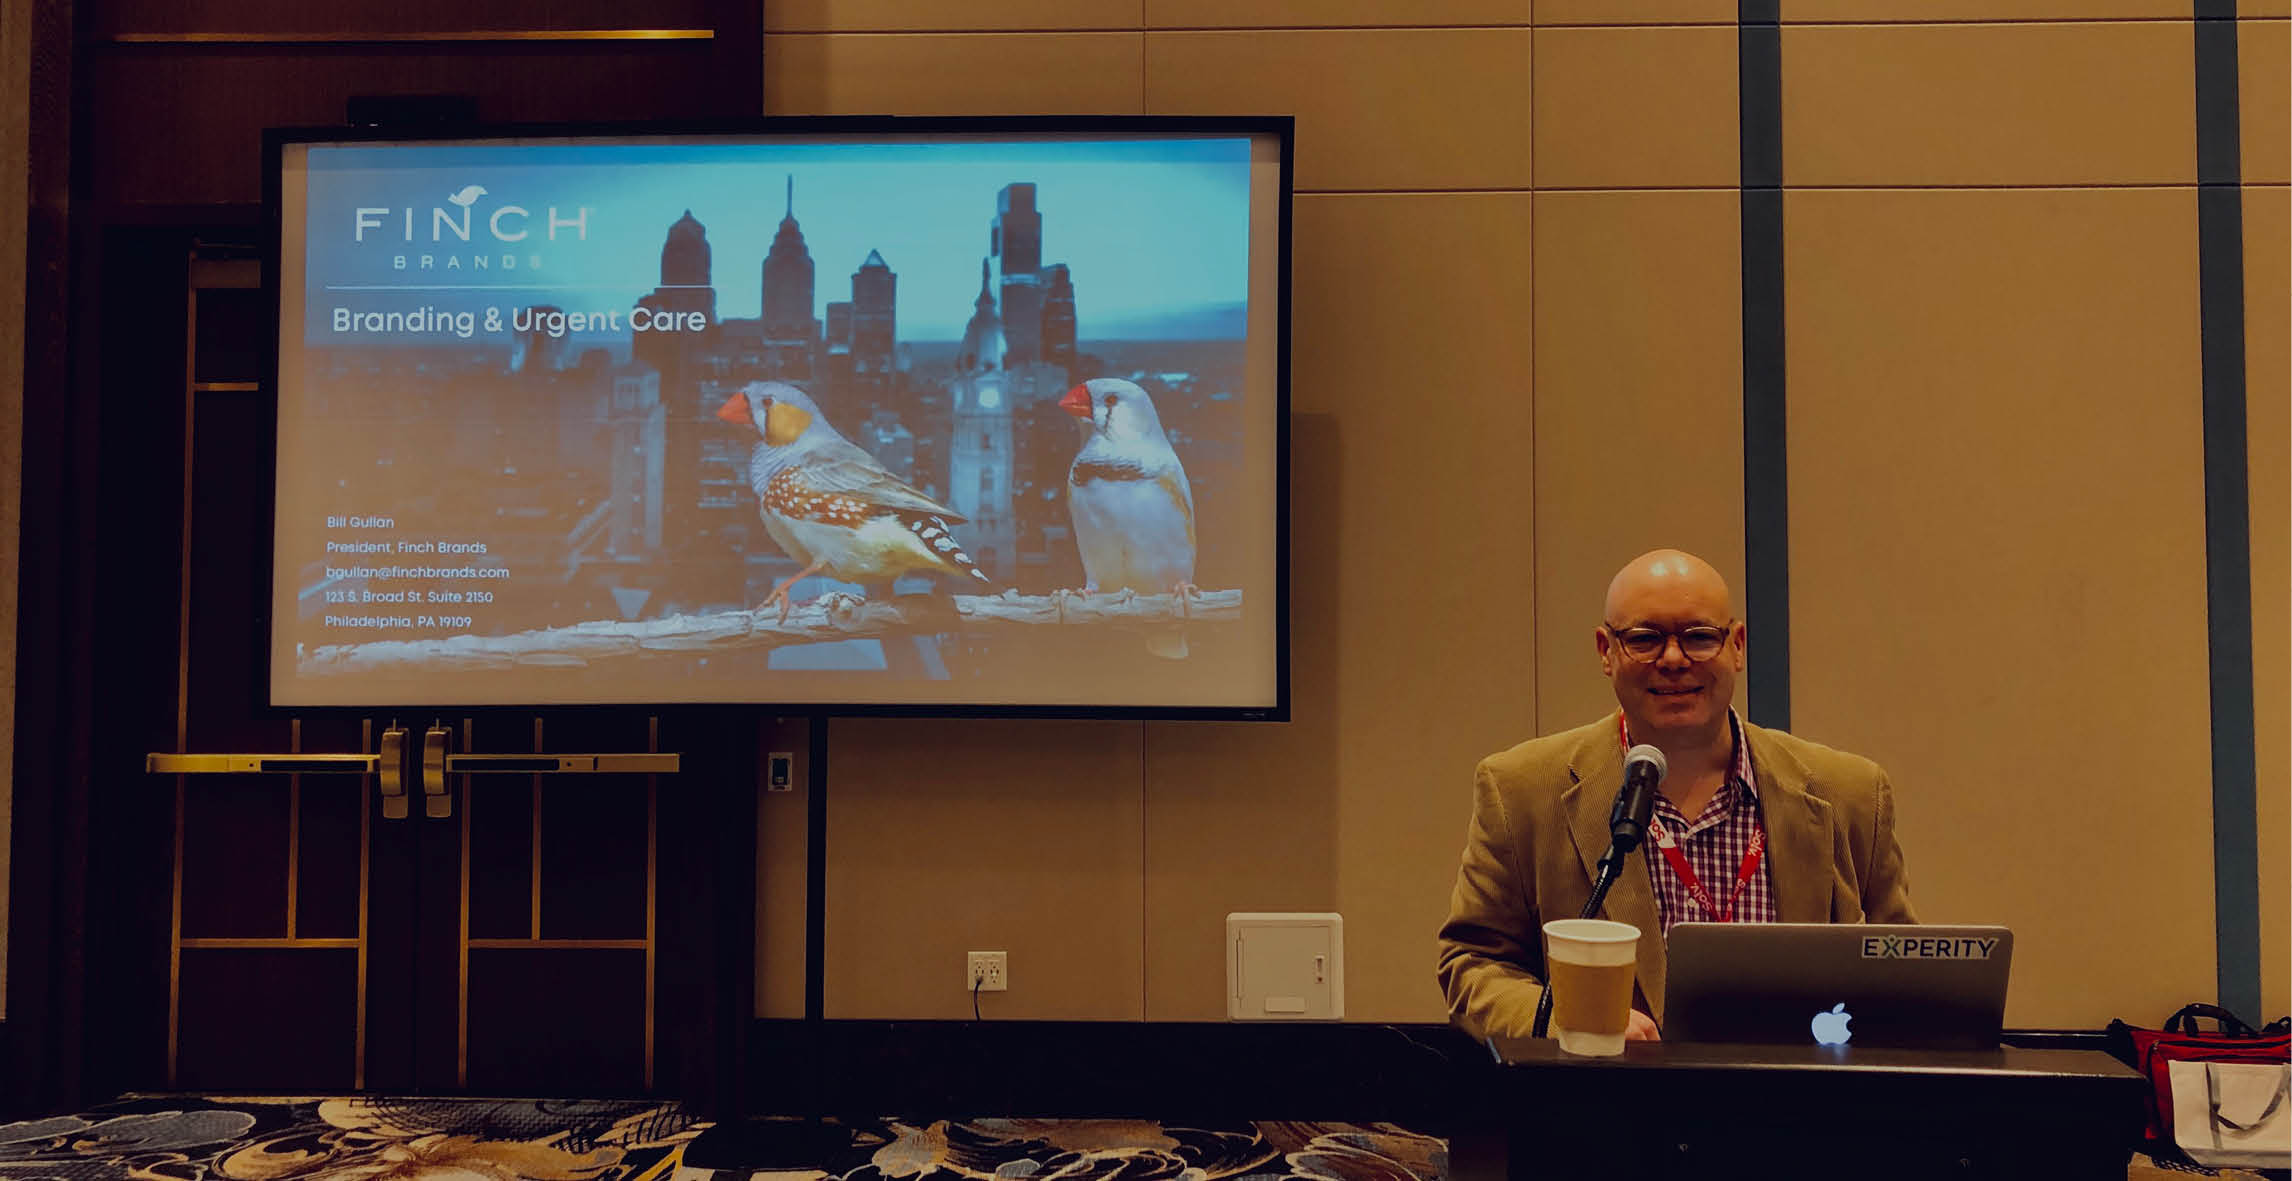 Branding Keynote with Bill Gullan, President of Finch Brands – NERUCA Conference 2019